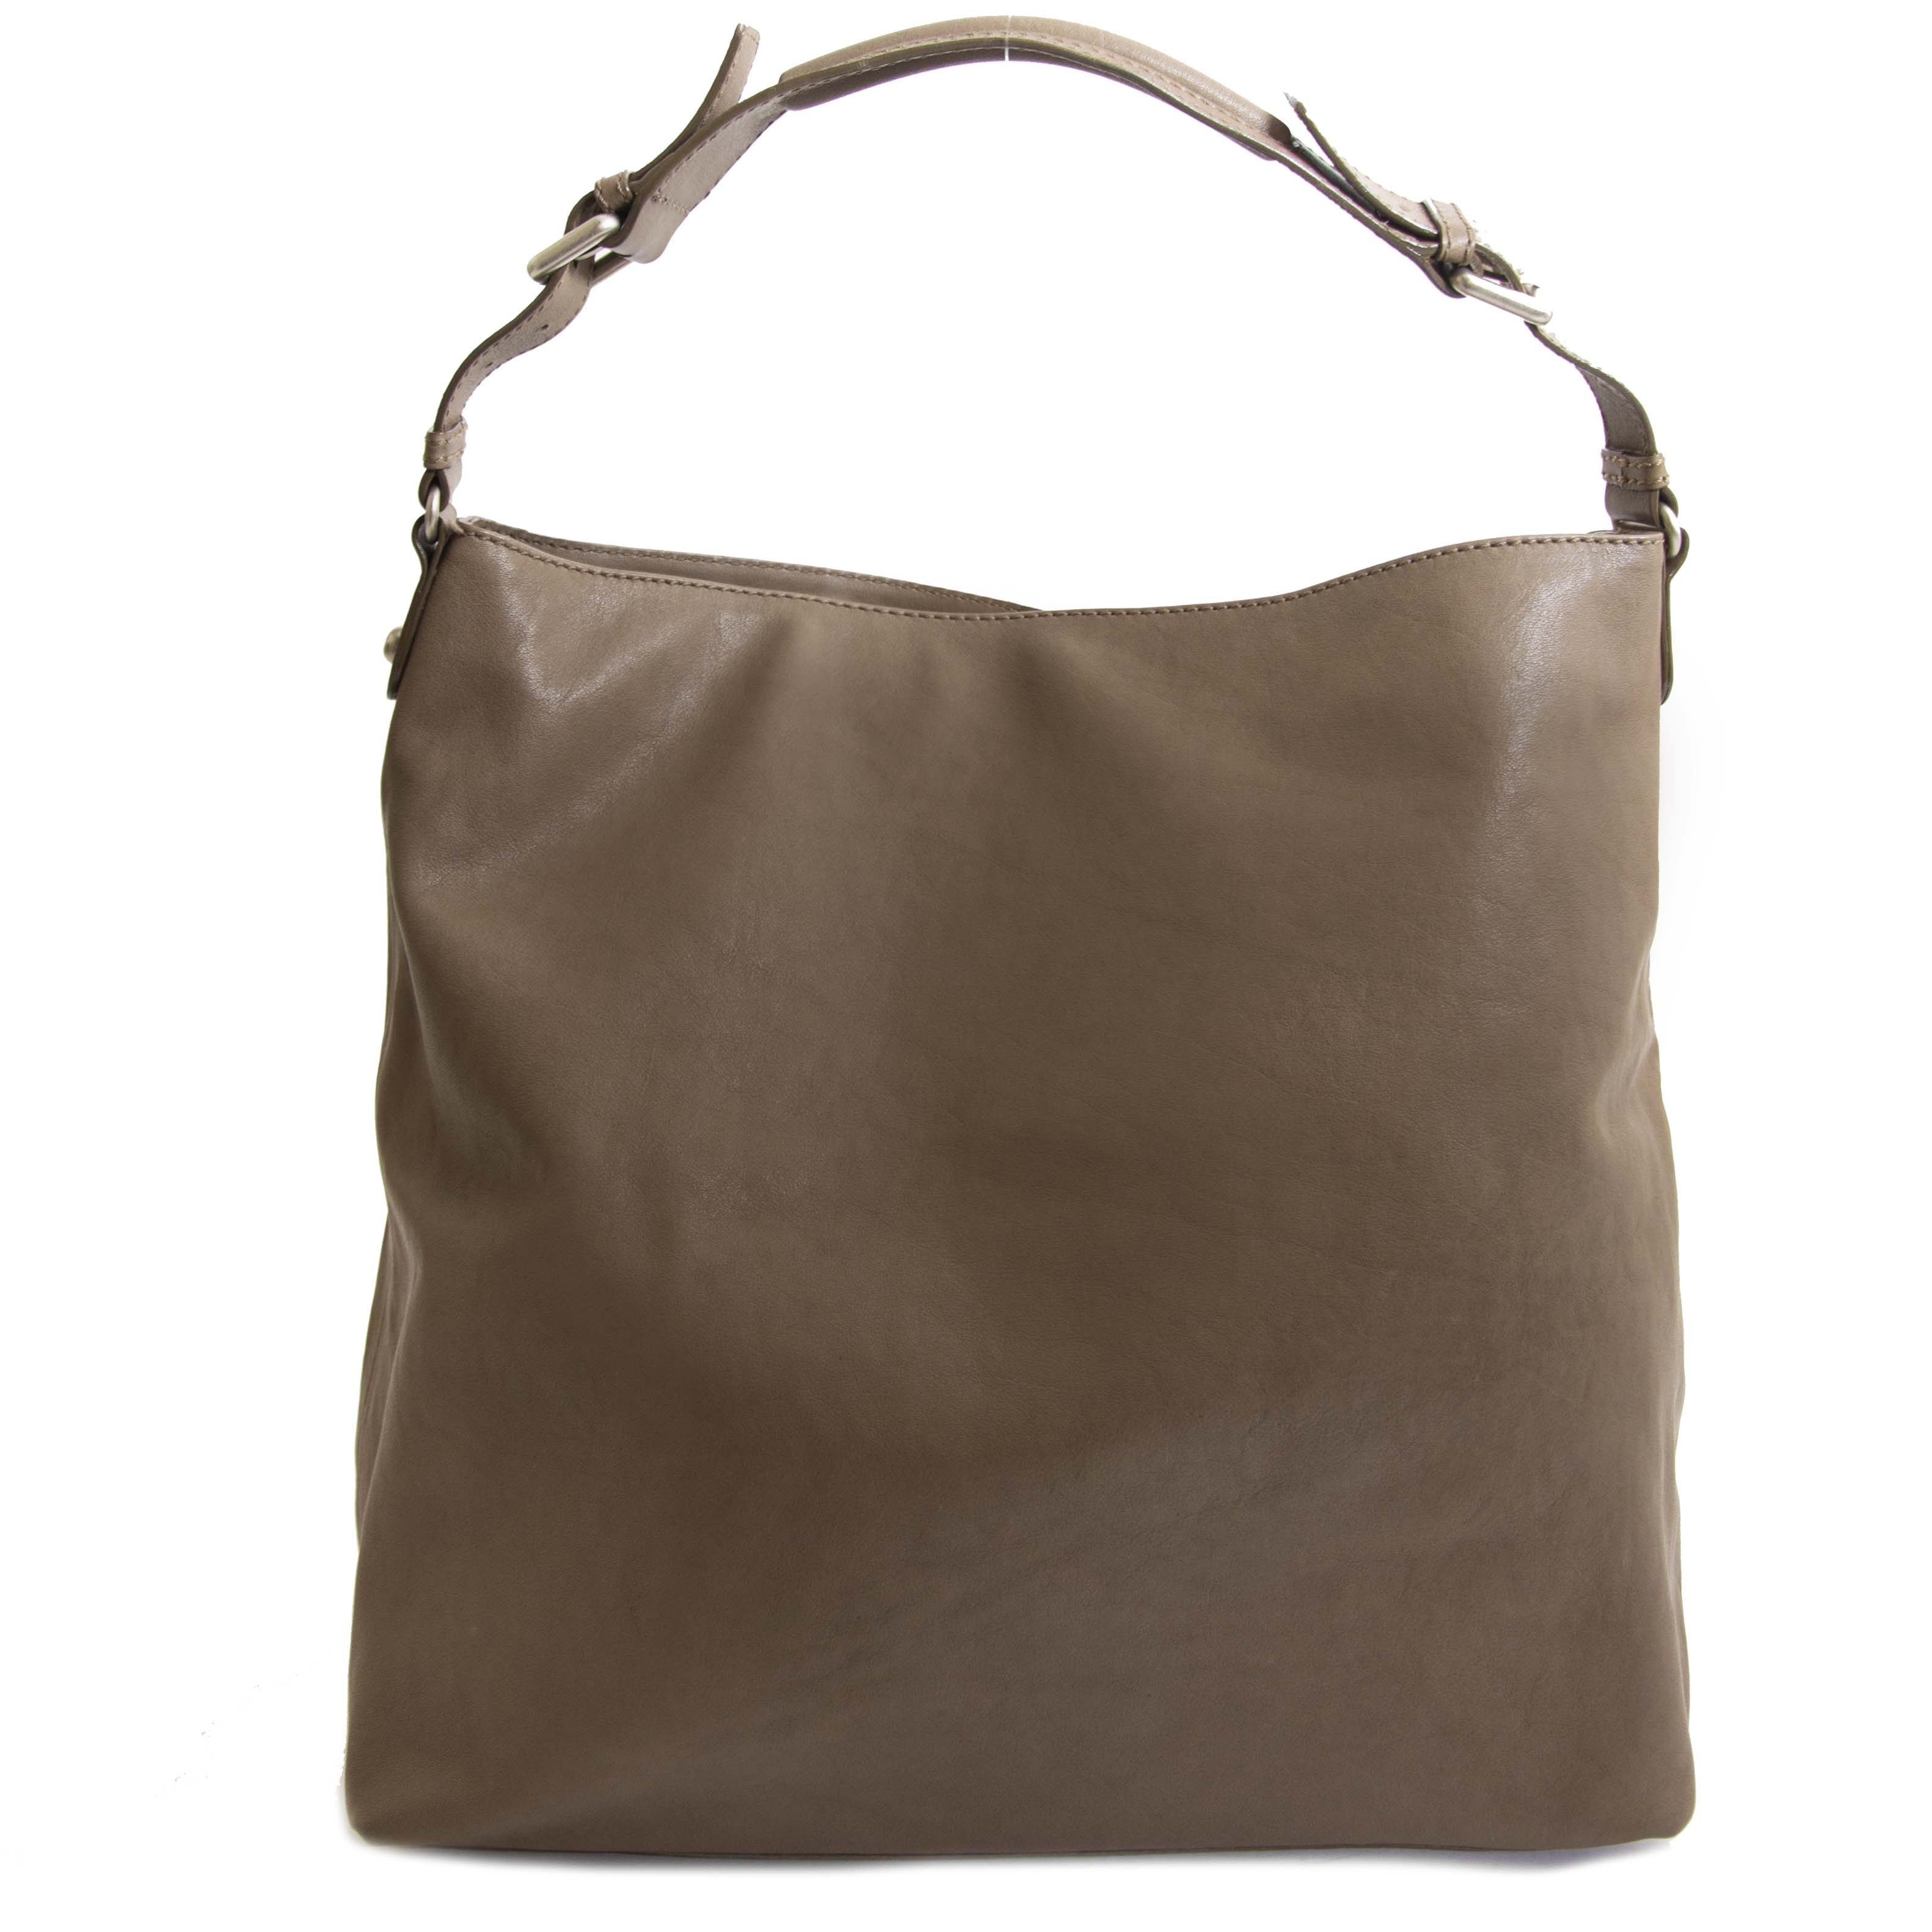 GF Ferré Taupe Shoulder Bag. GF Ferré Taupe Shoulder Bag.